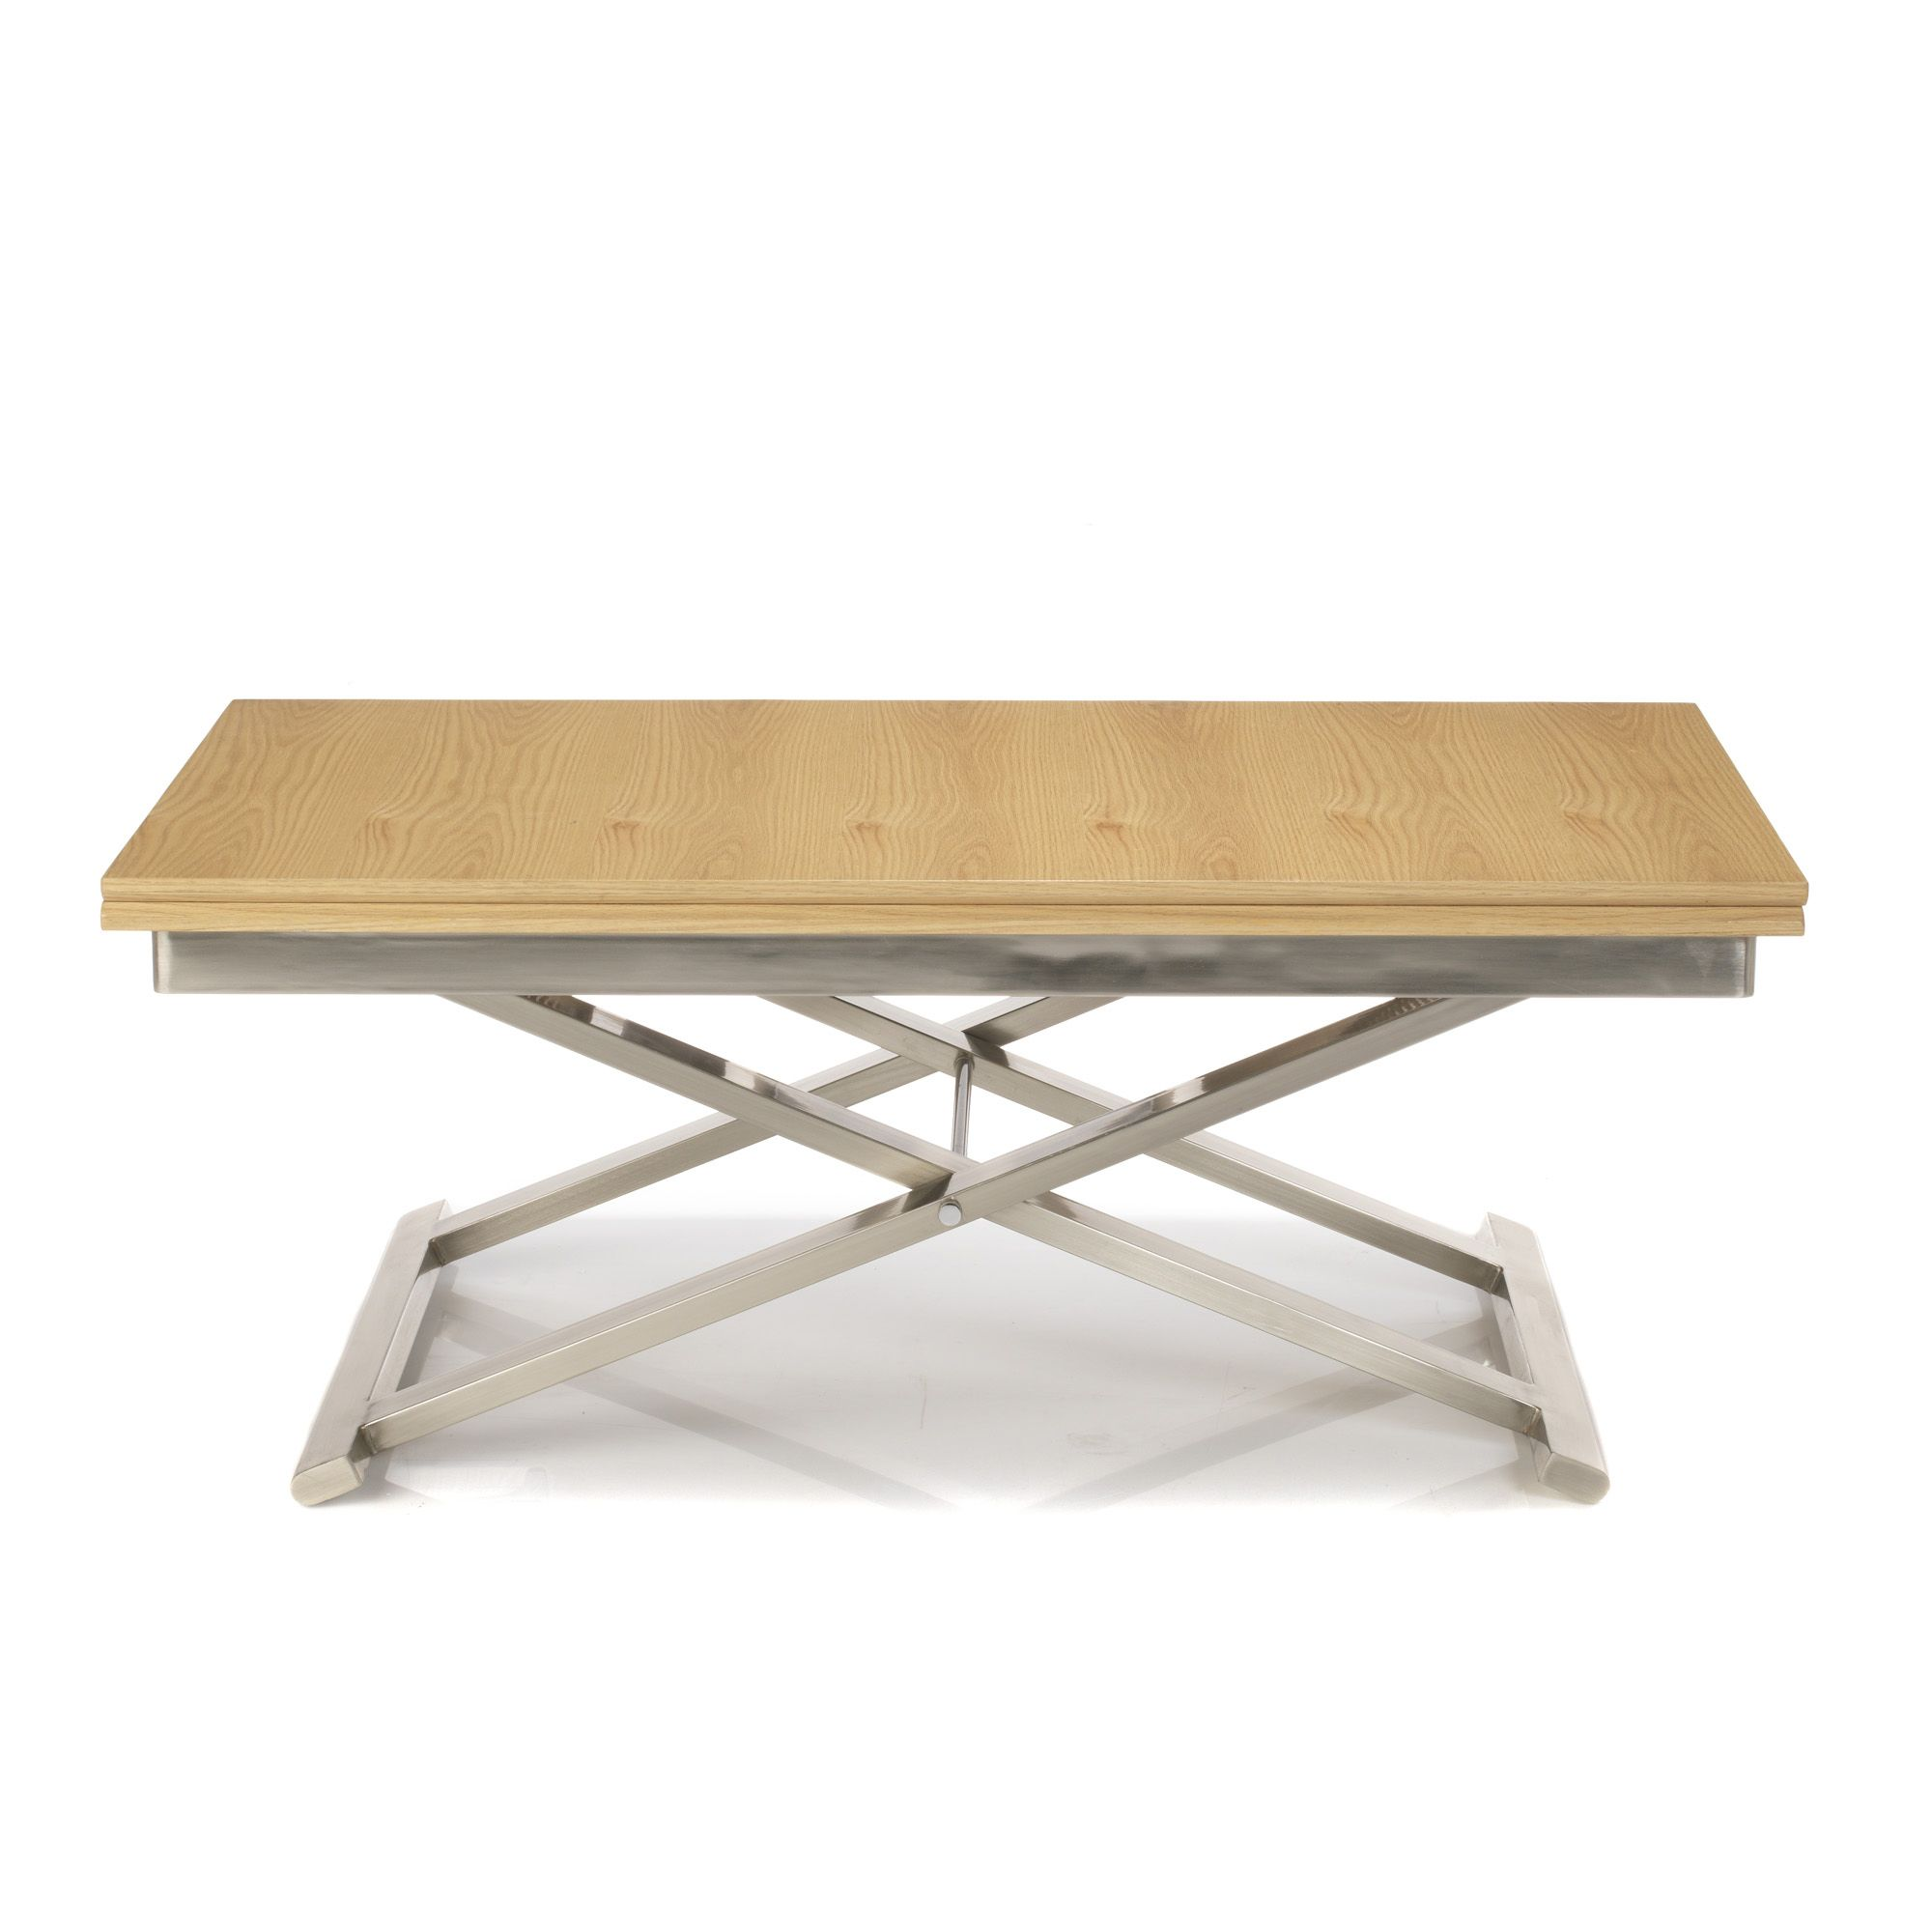 Table Pliante Salon Salle Manger Table Manger Pliante Table Salle A Manger Pliante Table En Bois